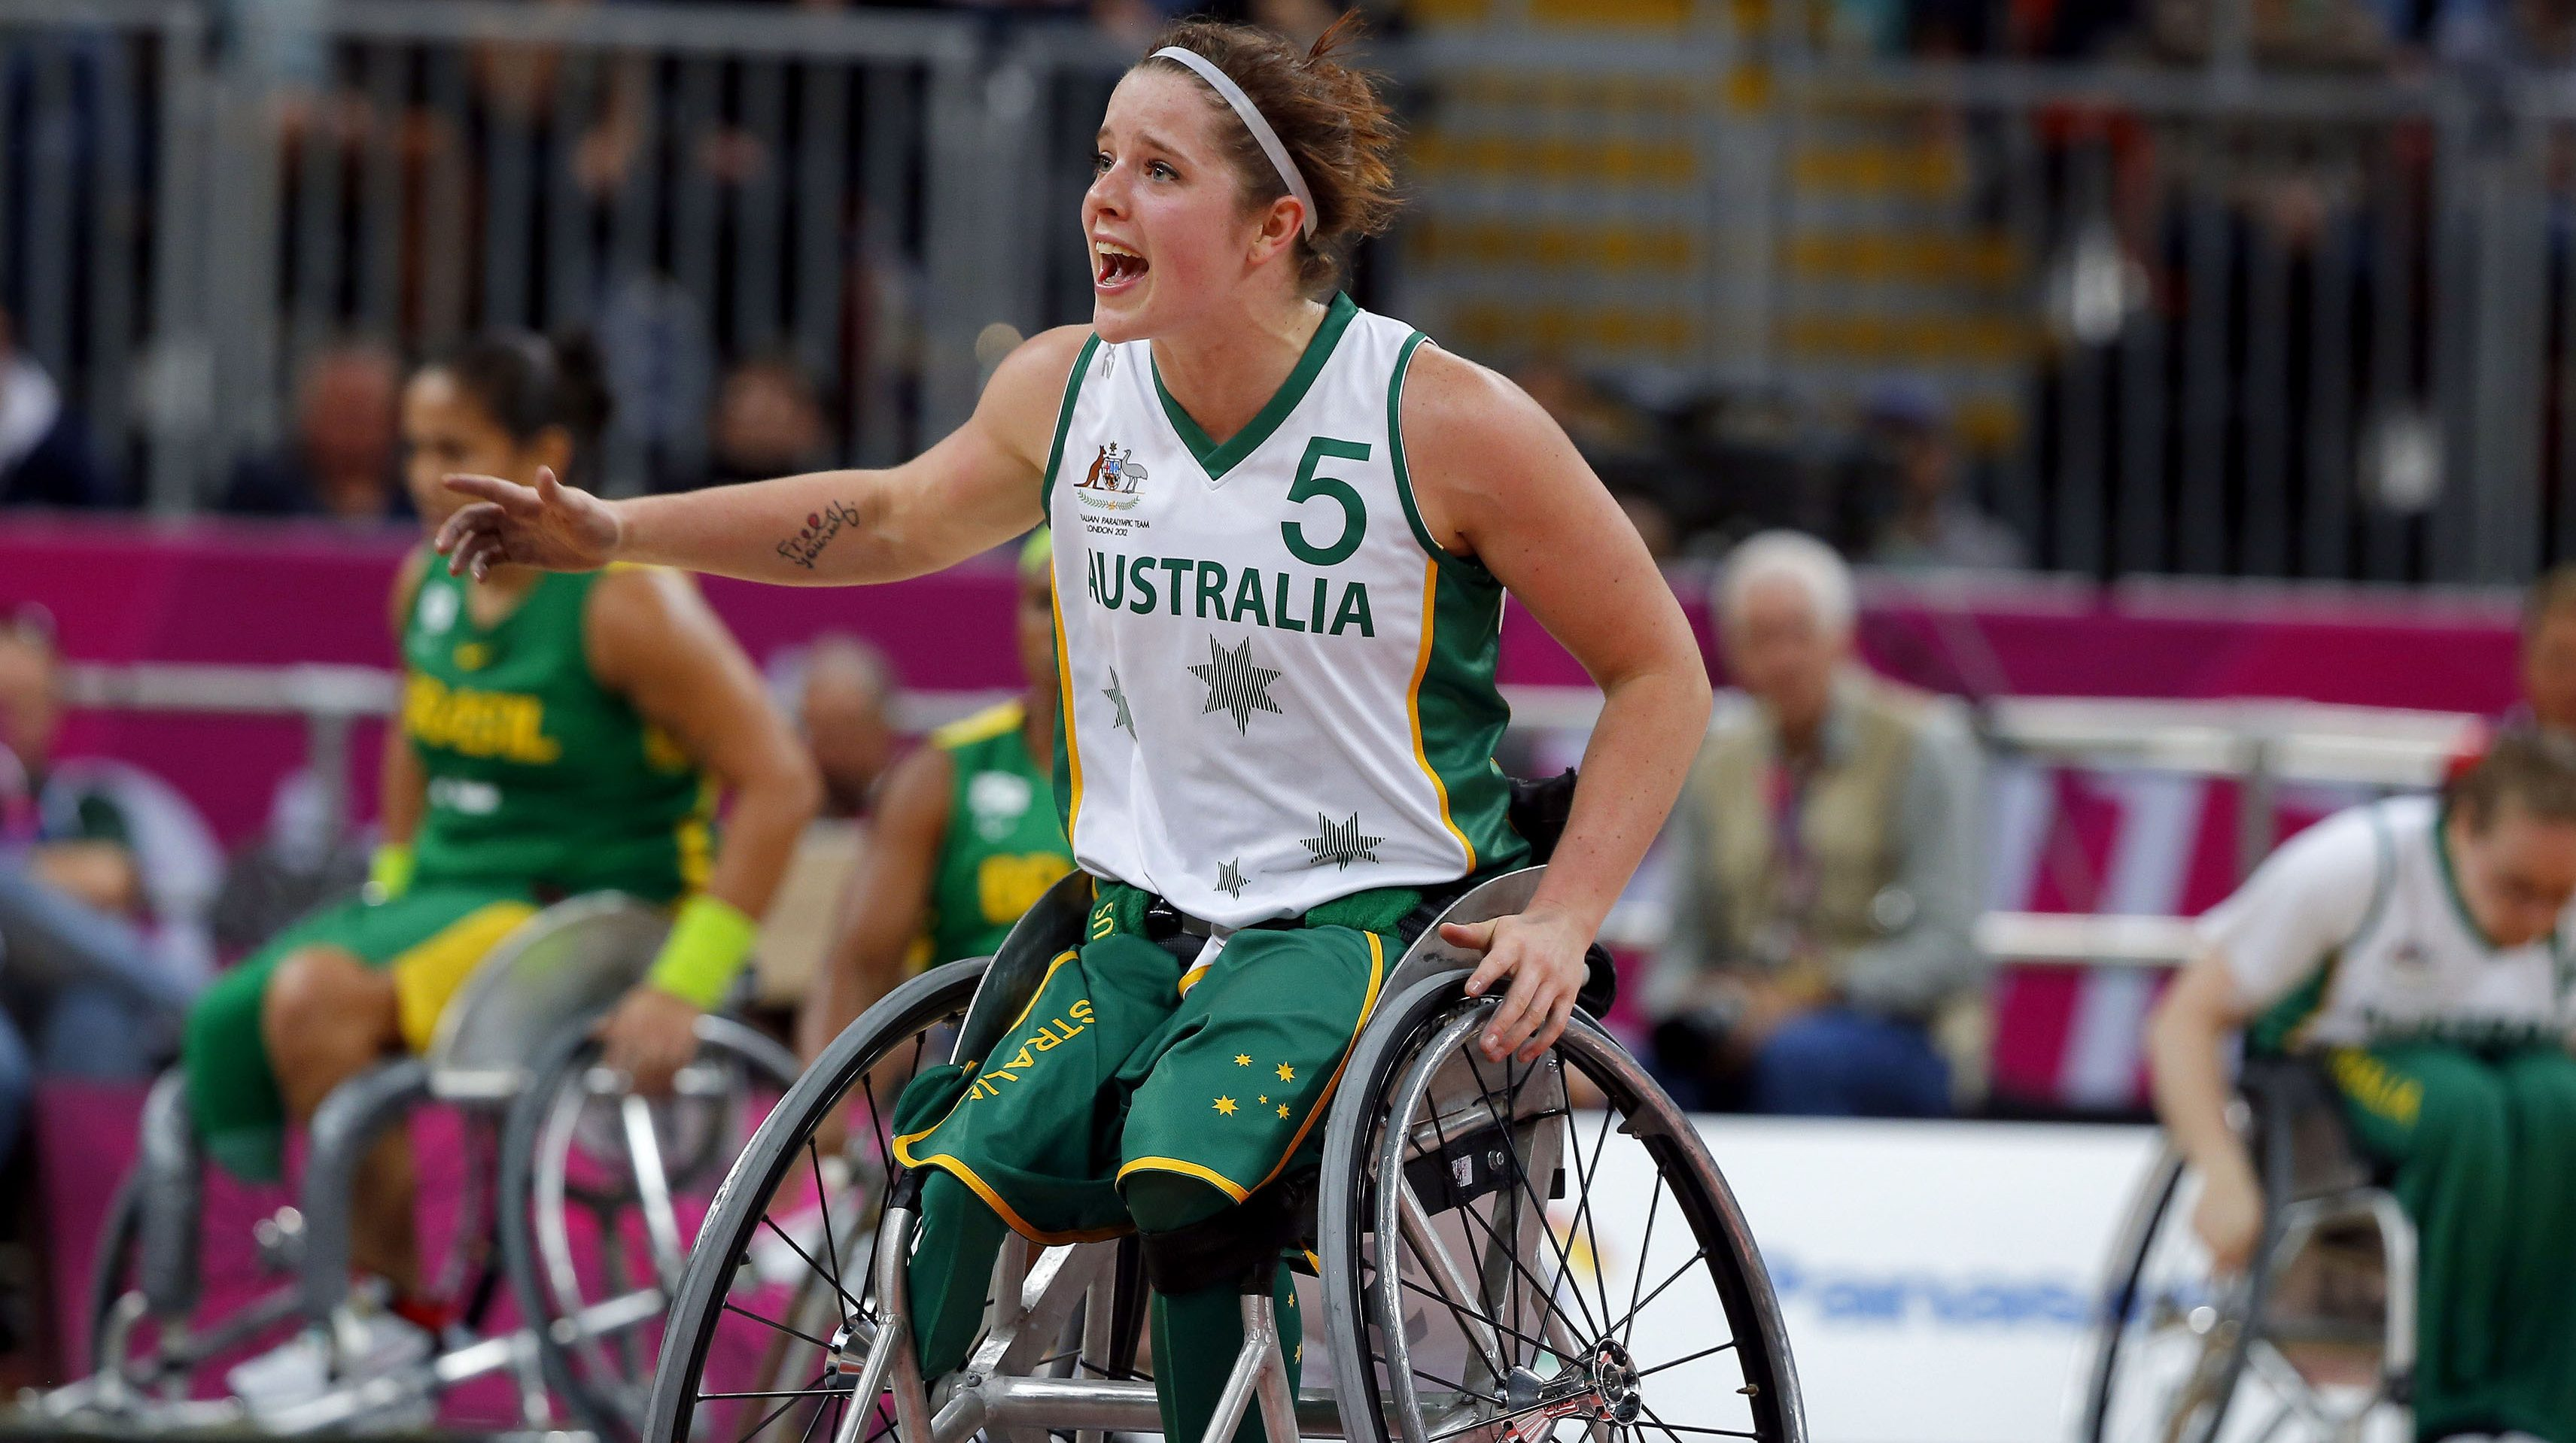 Gliders team announced for 2017 IWBF AOZ Qualifiers